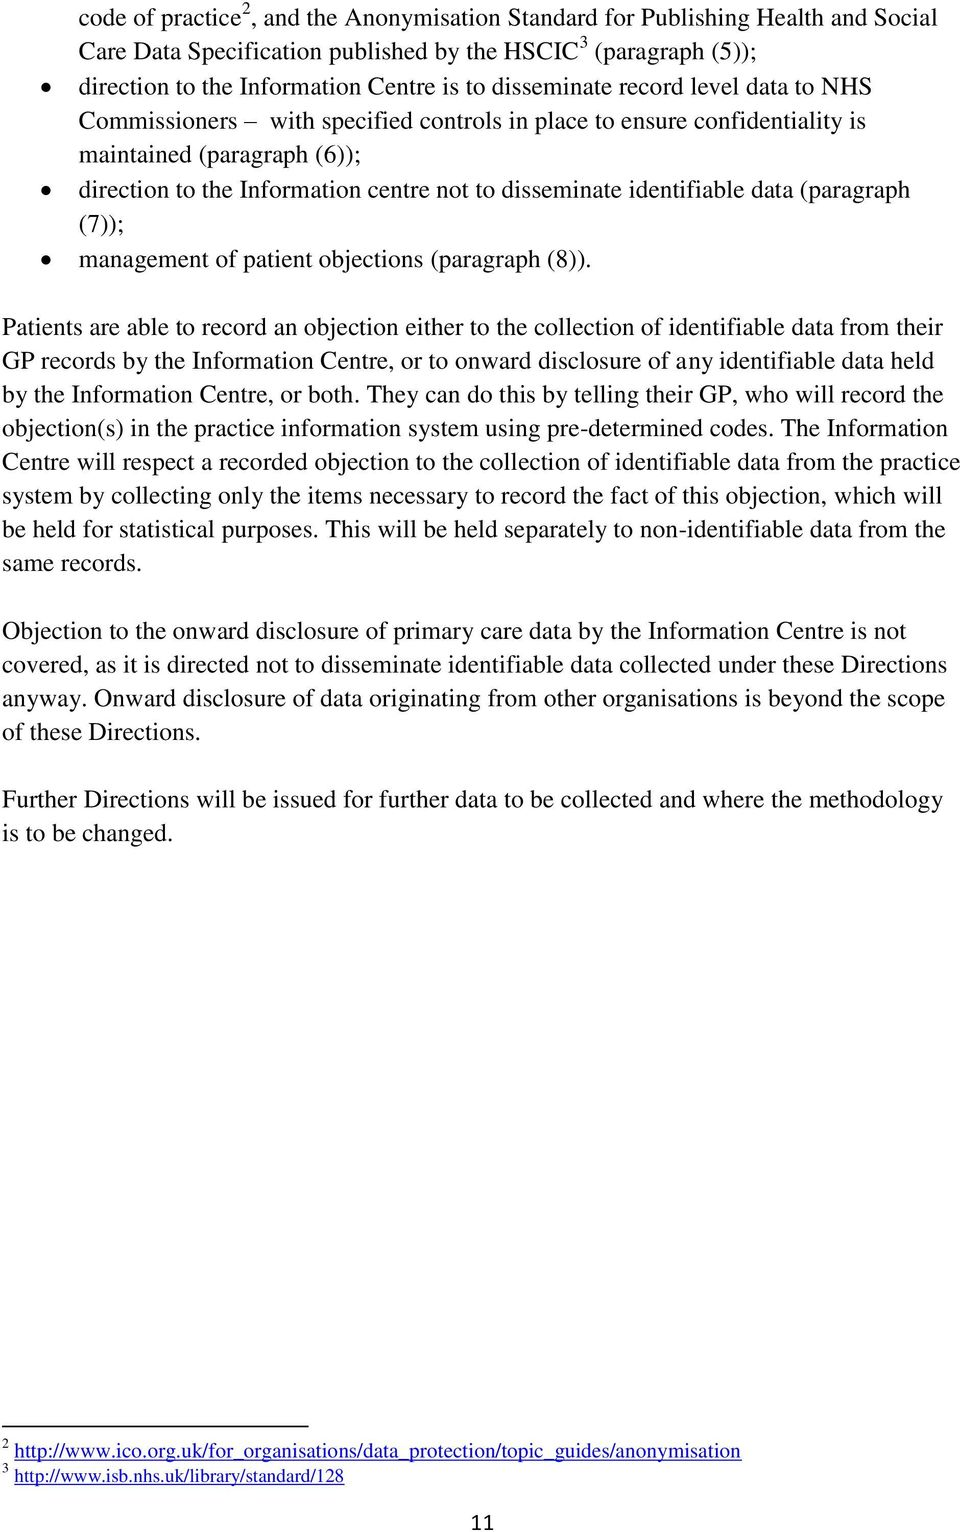 identifiable data (paragraph (7)); management of patient objections (paragraph (8)).